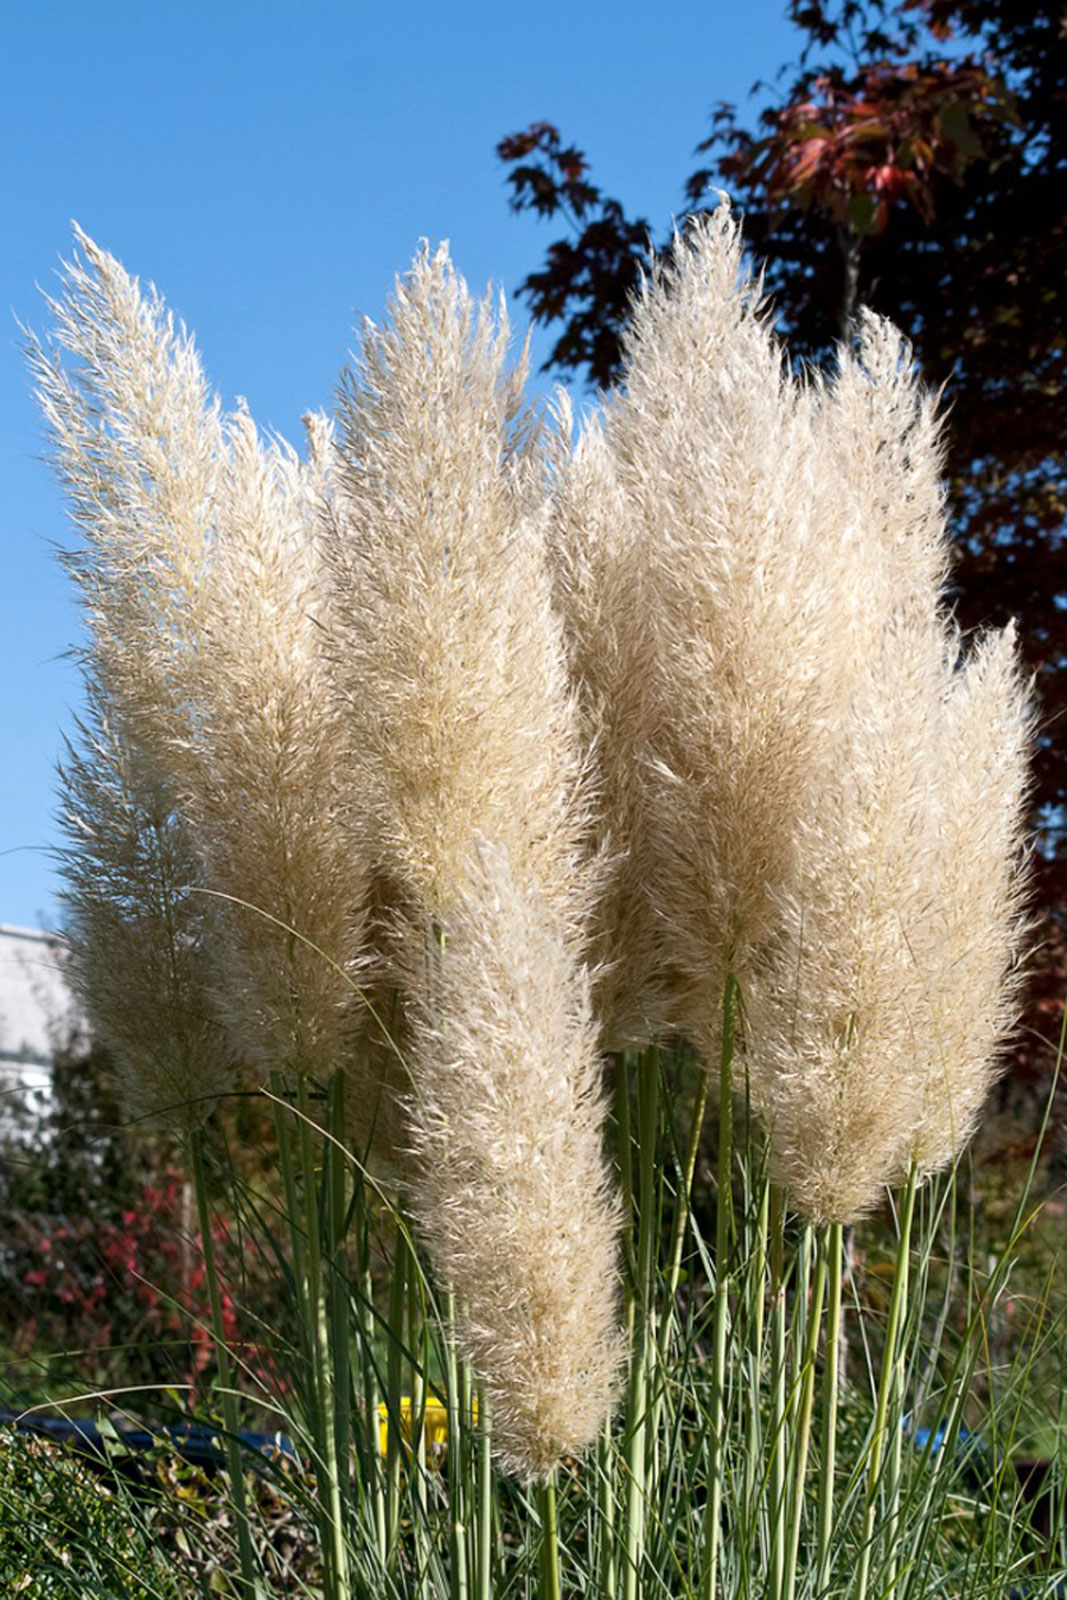 Container Gown Pampas Grass - Can You Grow Pampas Grass In Pots